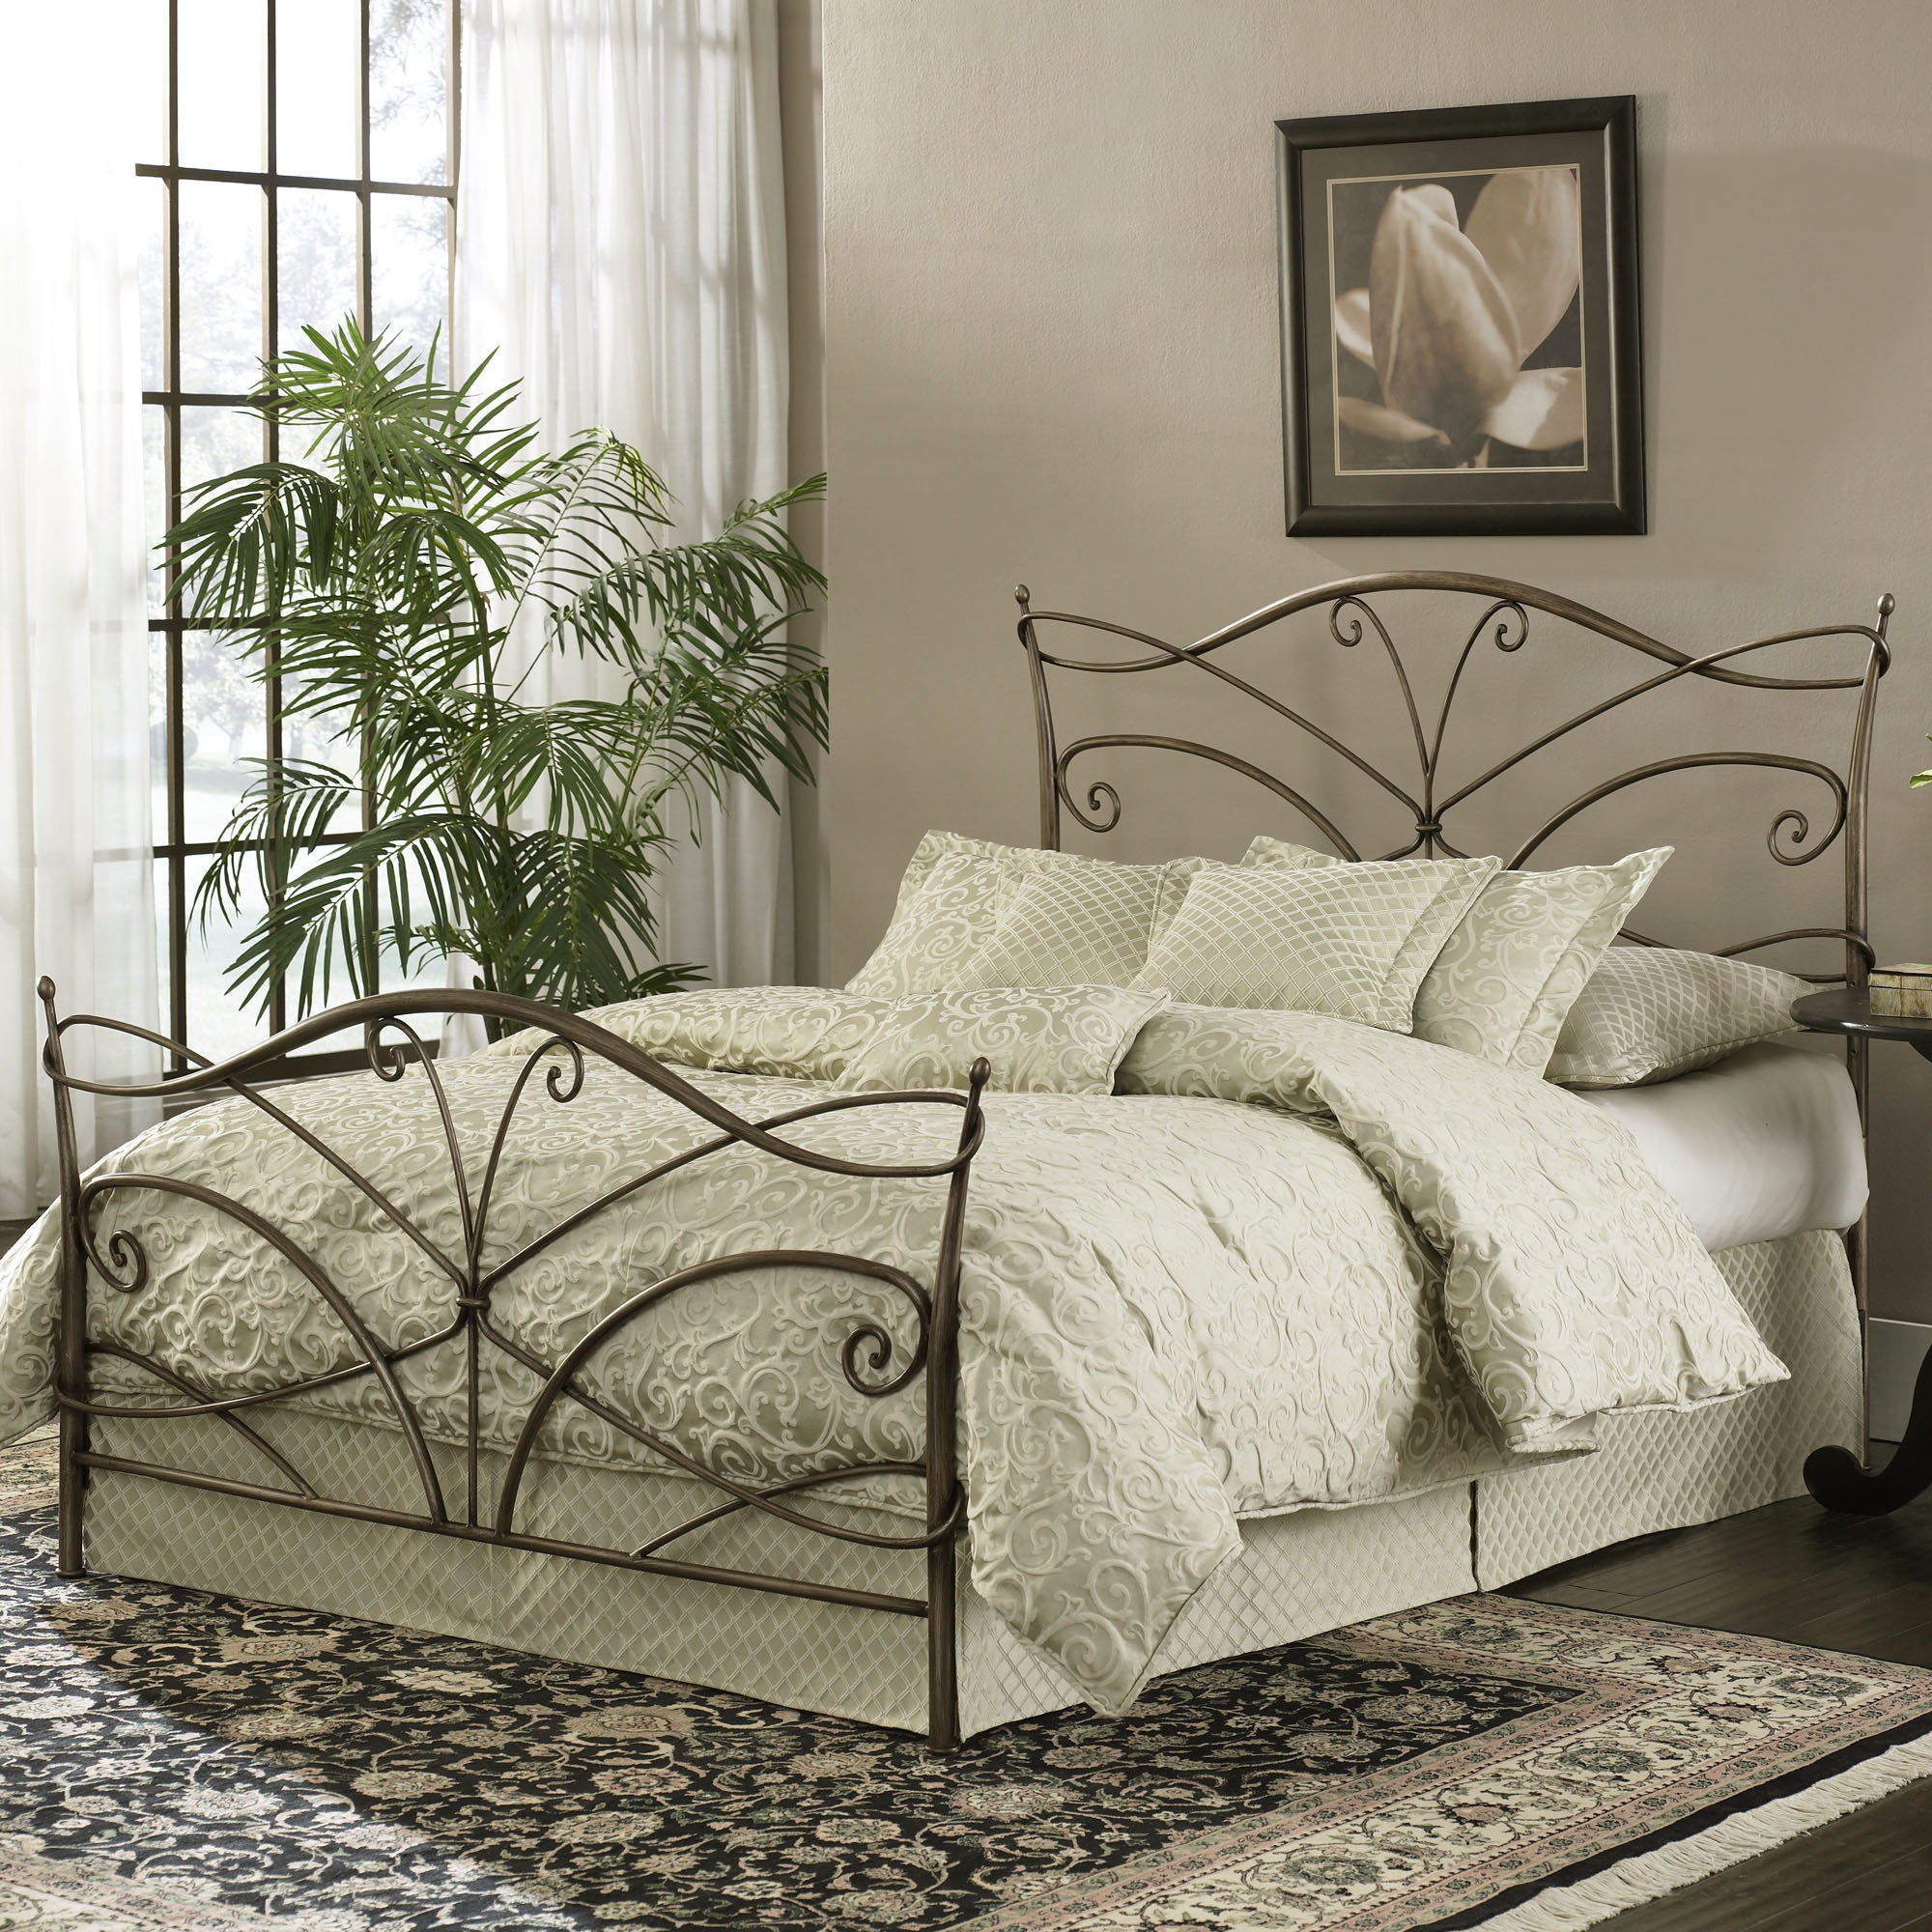 Metal headboard bed frame - Bronze Metal Adjustable Bed Frame Ivory White Cushion And Bedsheet Flower Wall Picture Living Plant Flower